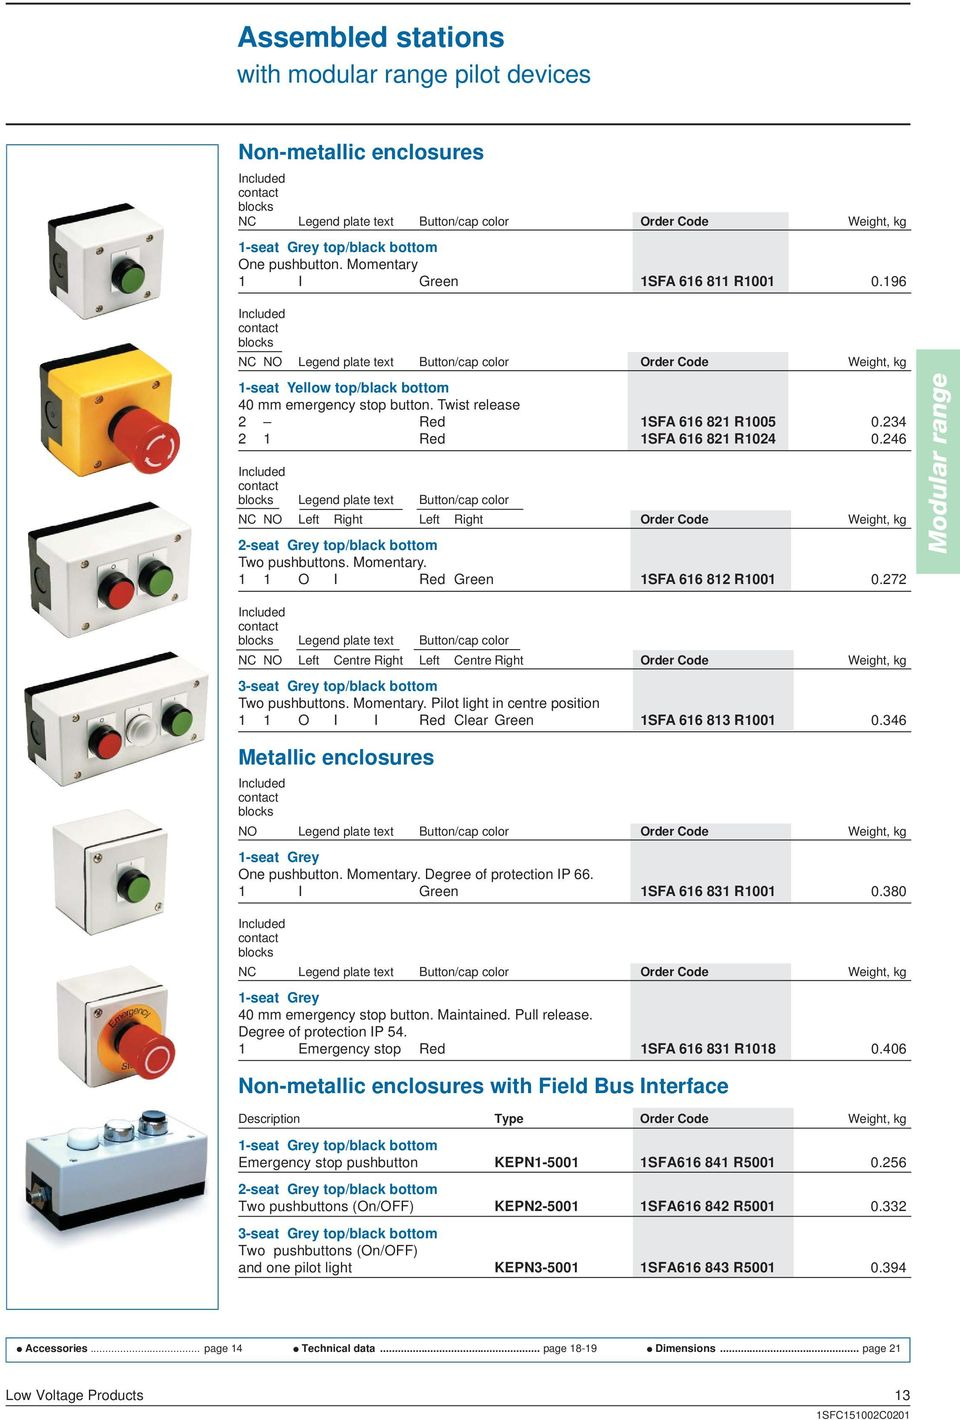 Pilot Devices 22 Mm Short Form Catalogue Pdf Rocker Switch Spst X2 With Red Green Indicator Lamps 196 Included Contact Blocks Nc No Legend Plate Text Button Cap Color Order Code Weight